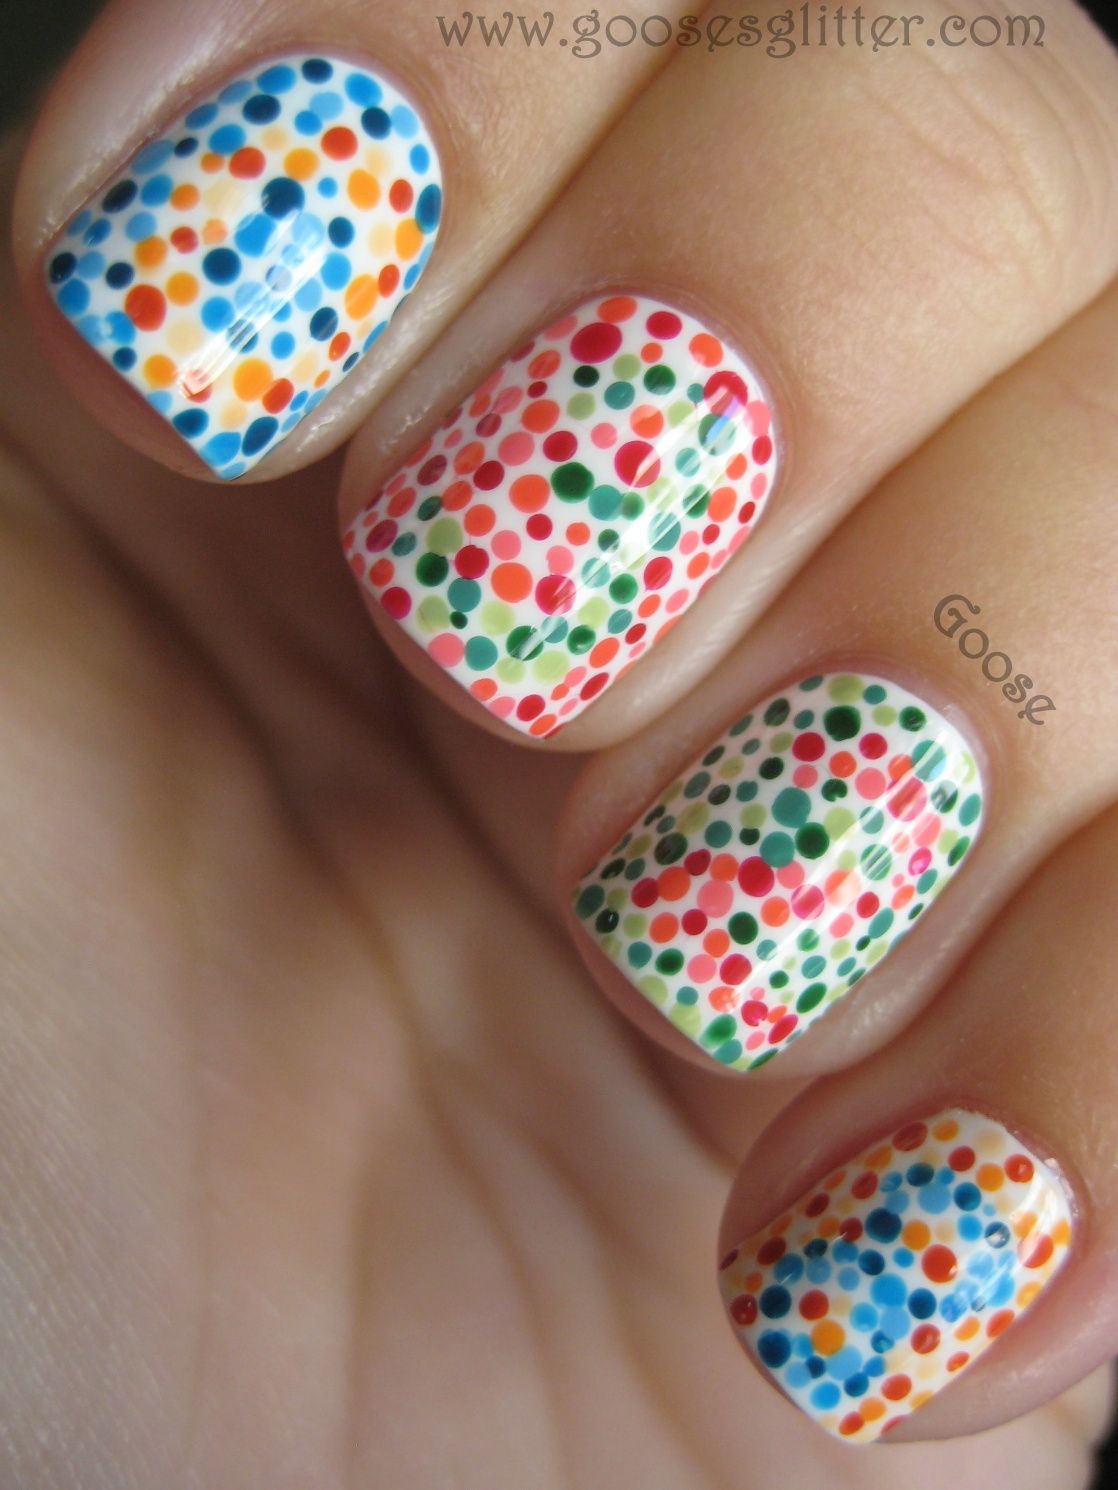 Haircolorful and Beauty polka dot nail art catalog photo